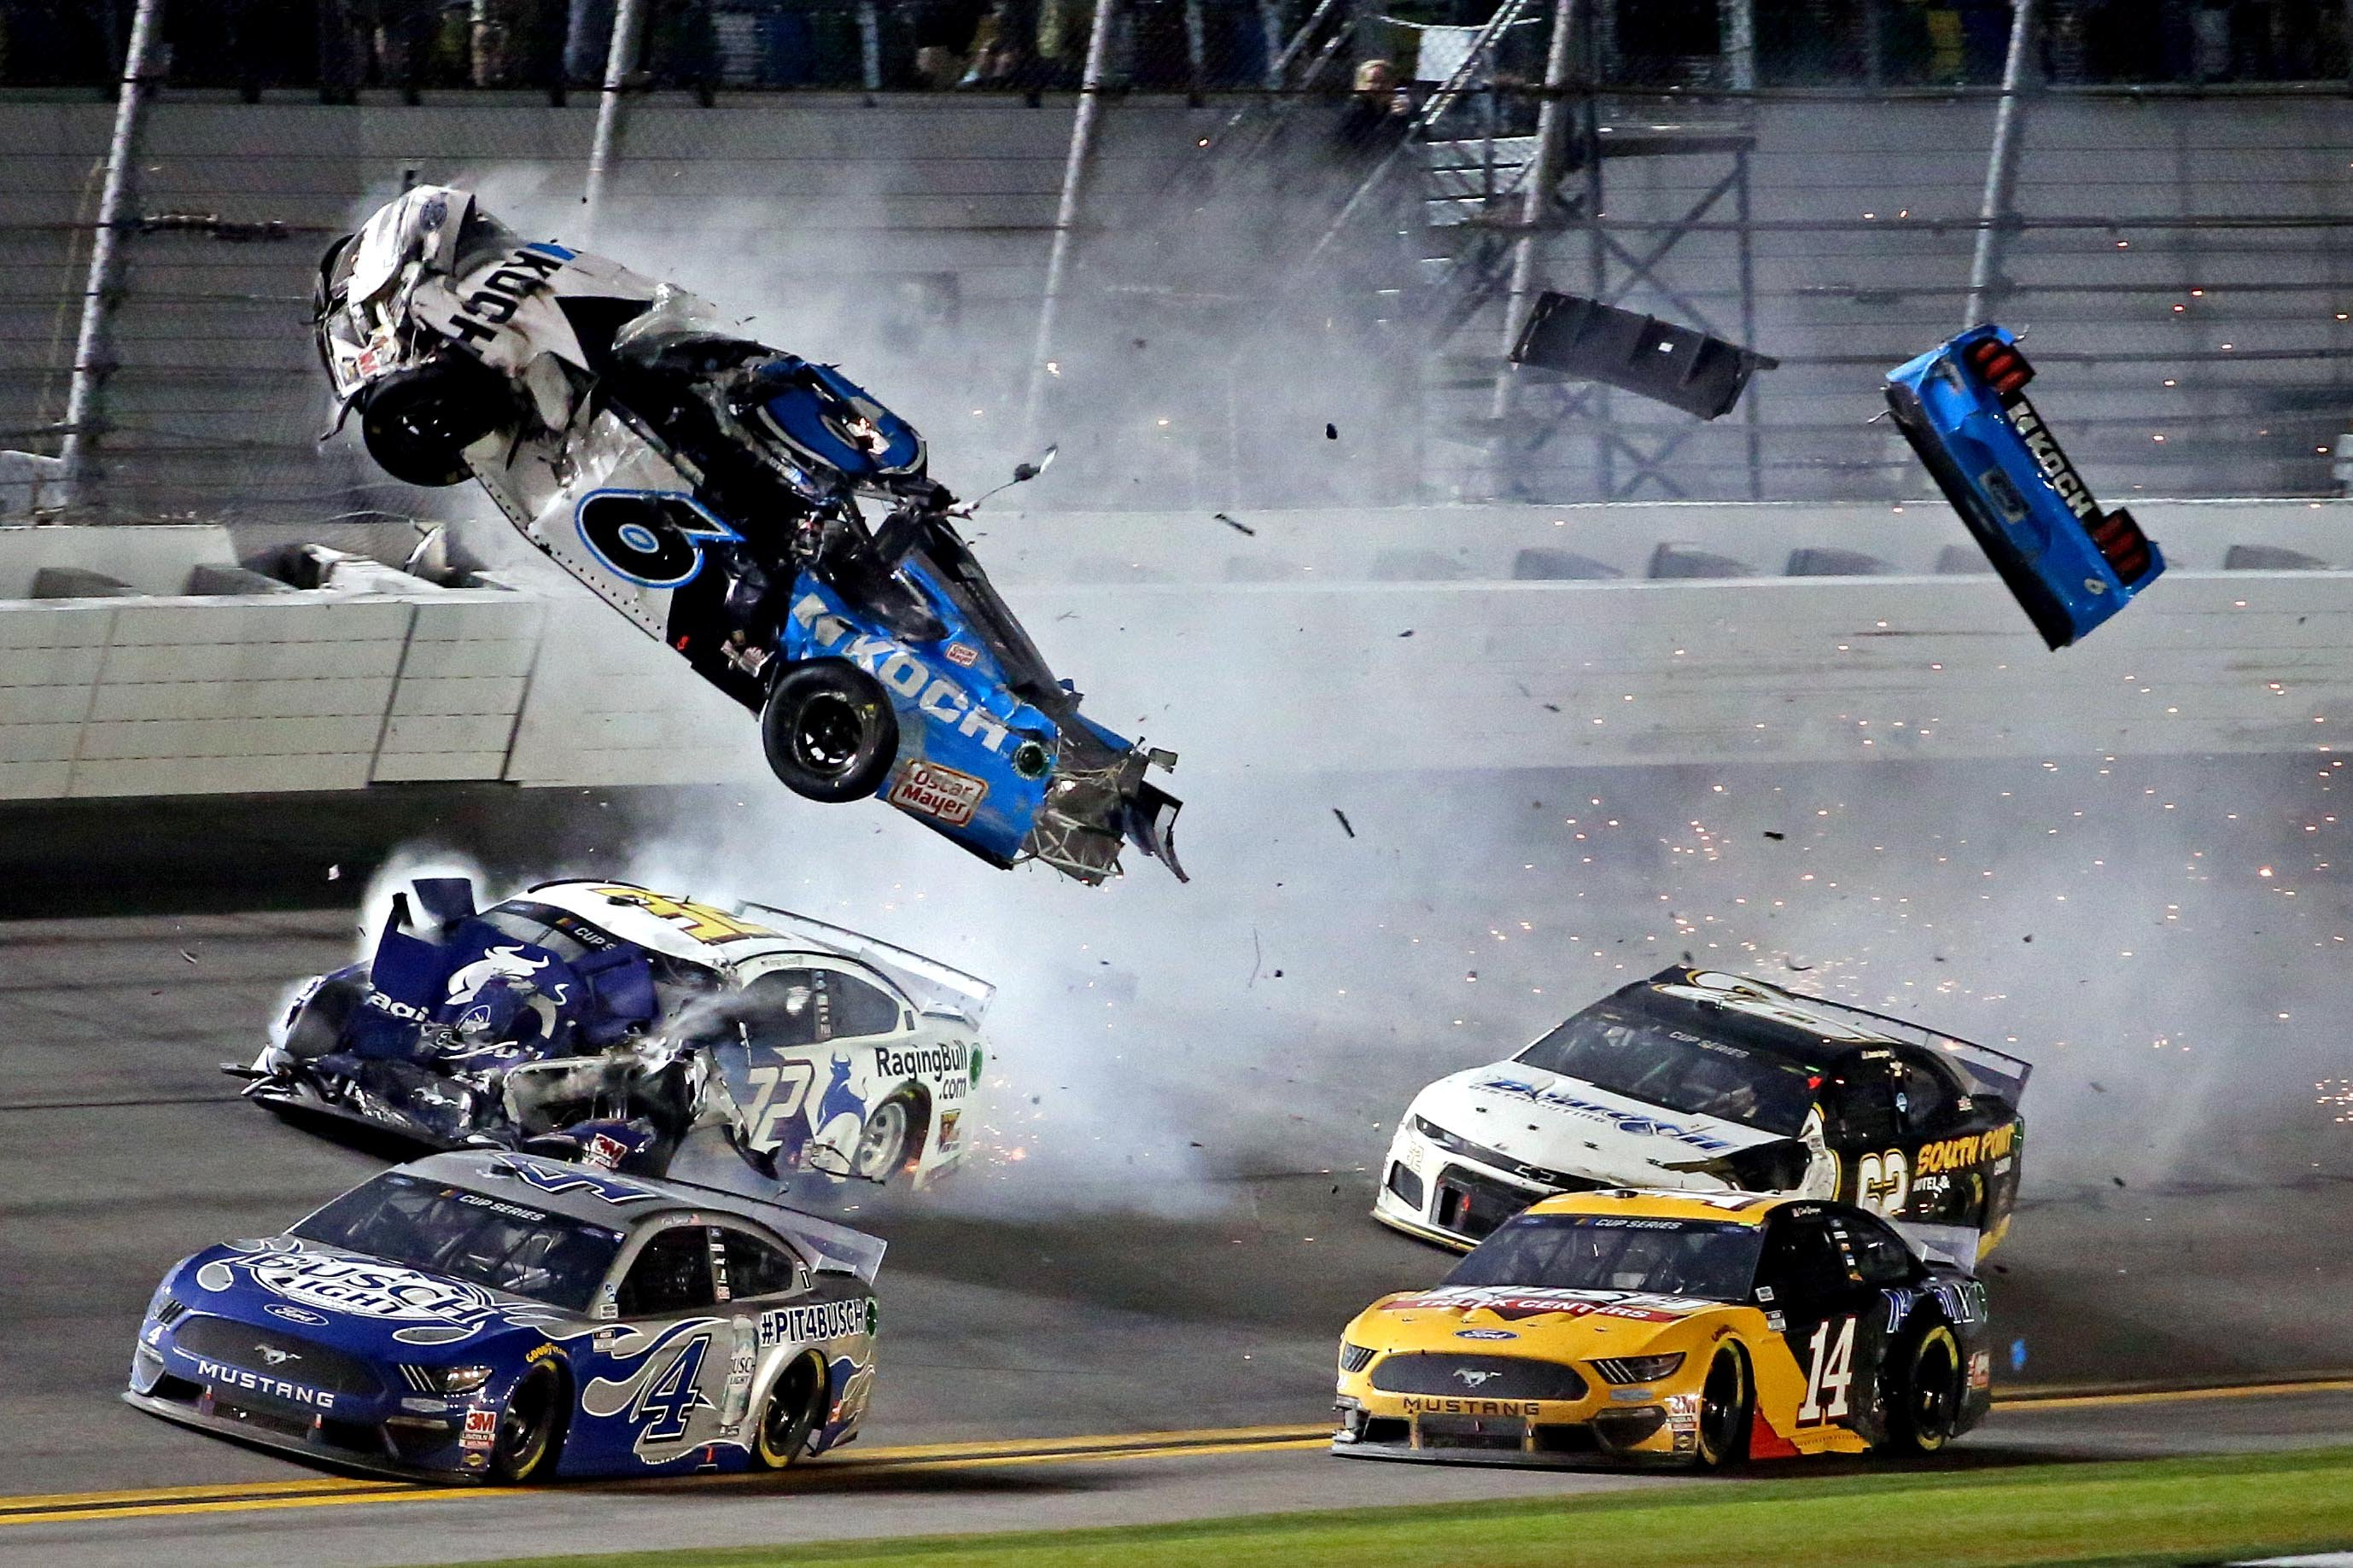 Ryan Newman In Serious Condition After Fiery Crash At Daytona 500